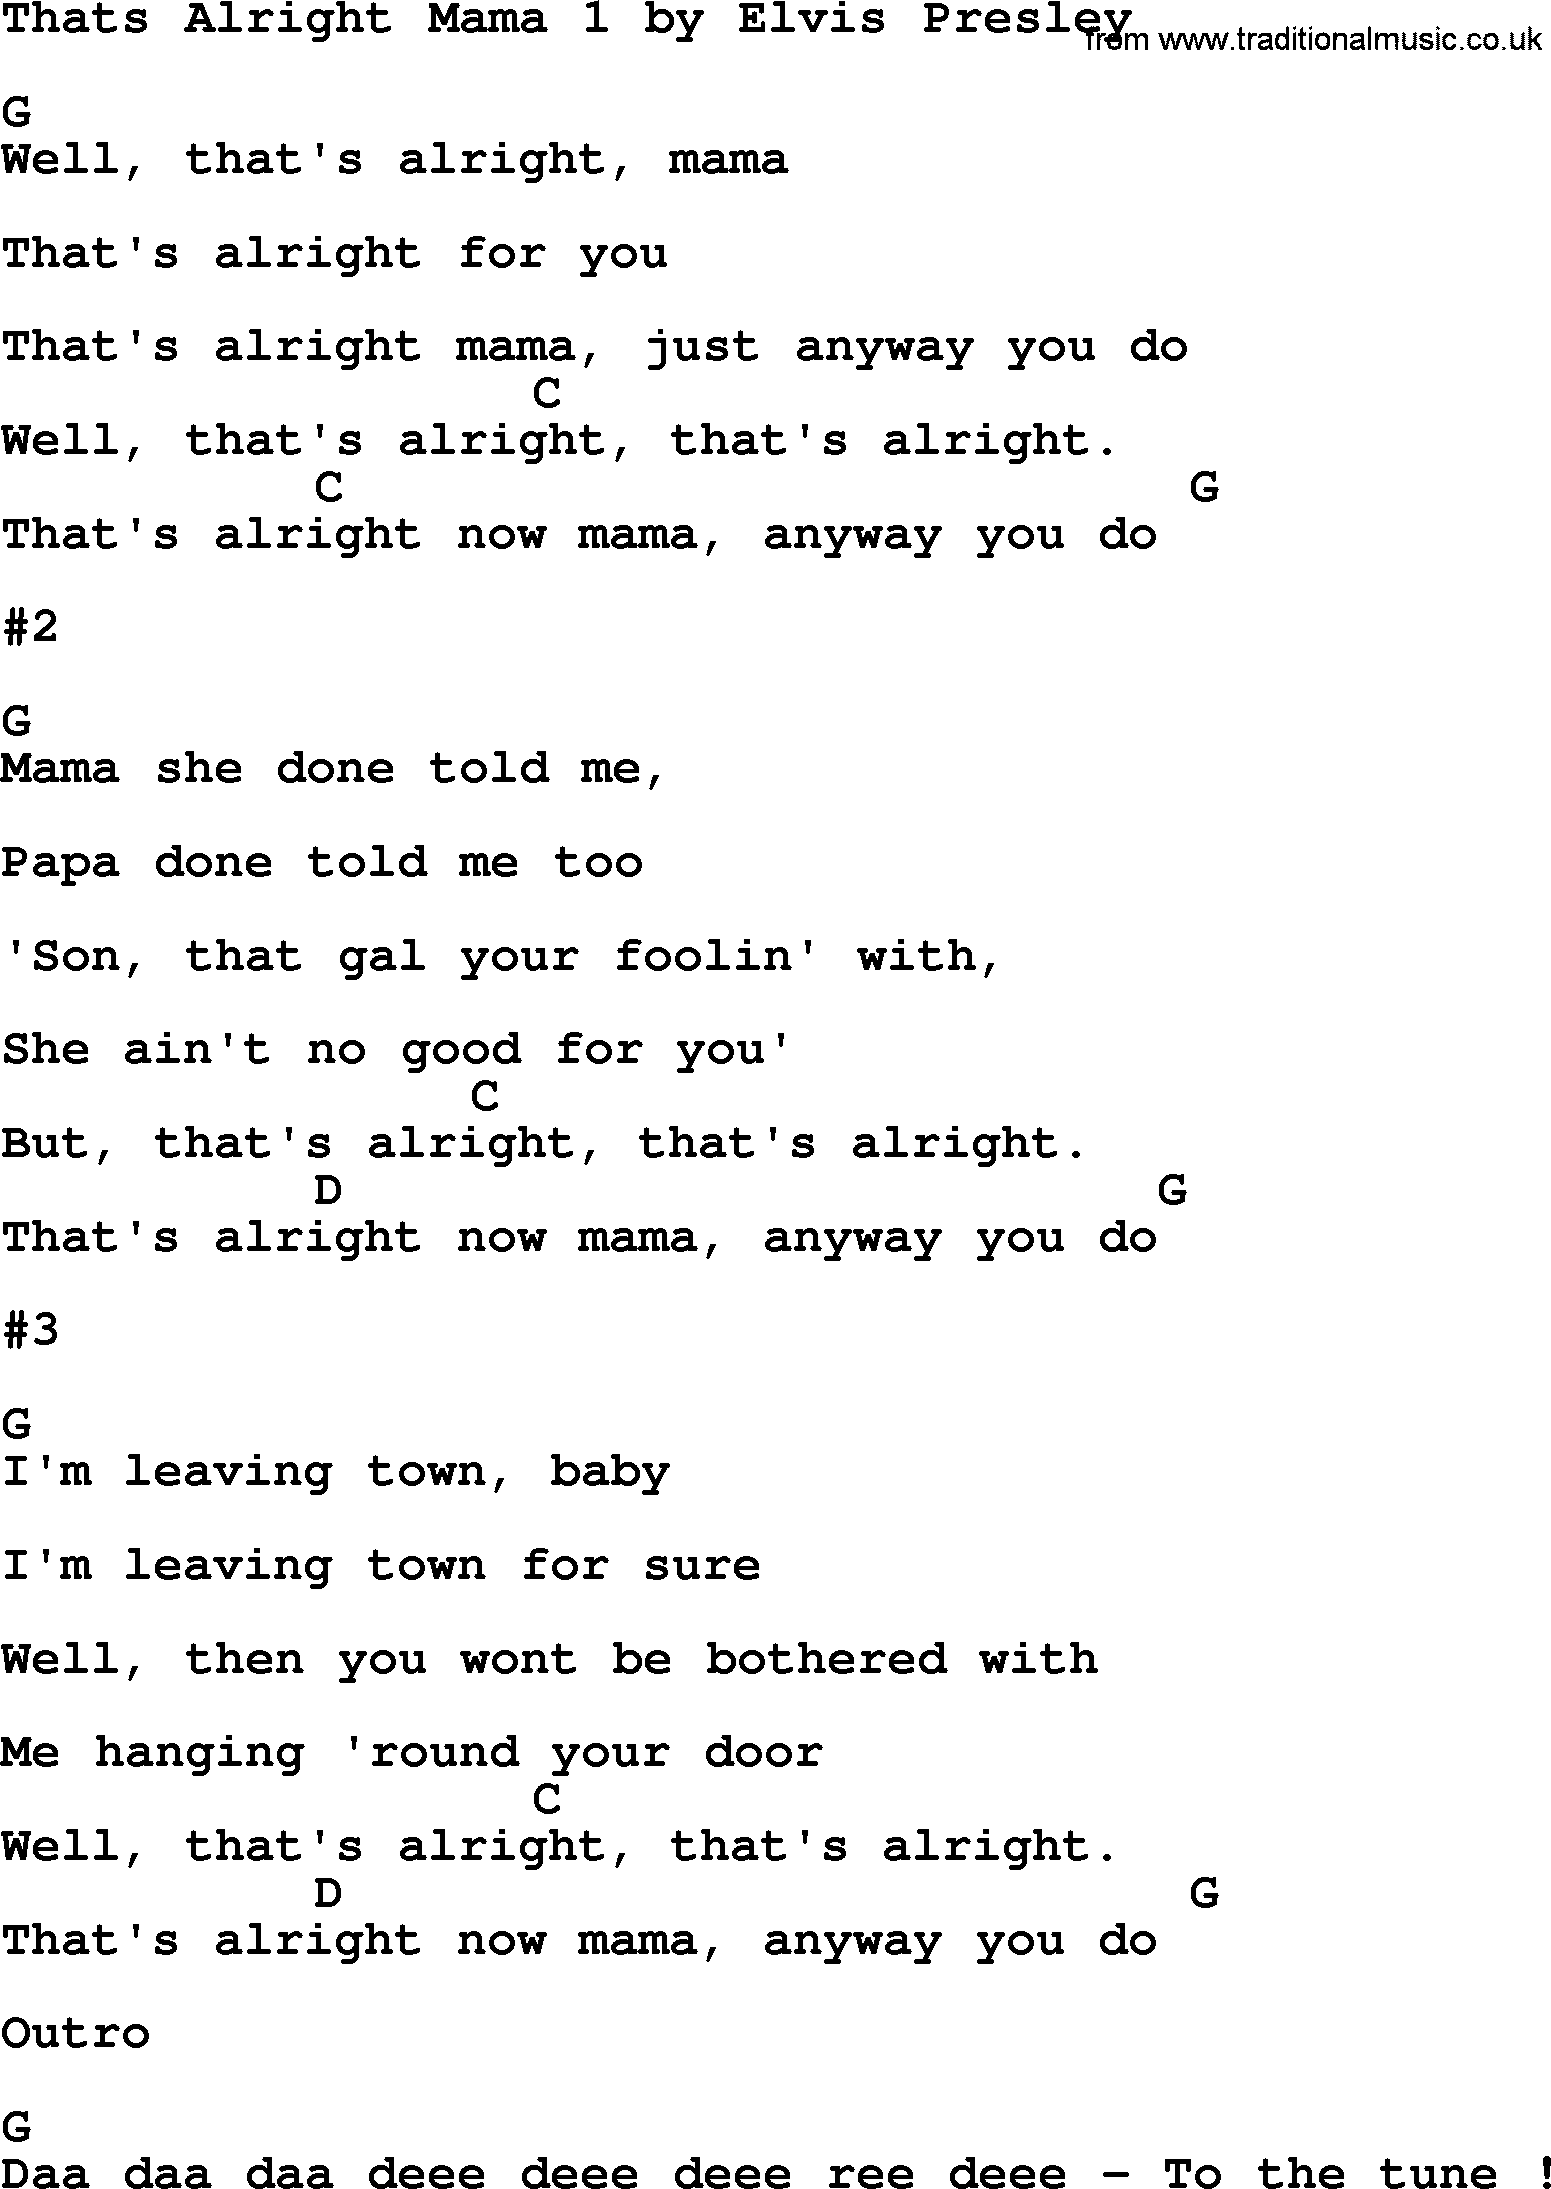 Thats alright mama 1 by elvis presley lyrics and chords elvis presley song thats alright mama 1 lyrics and chords hexwebz Images